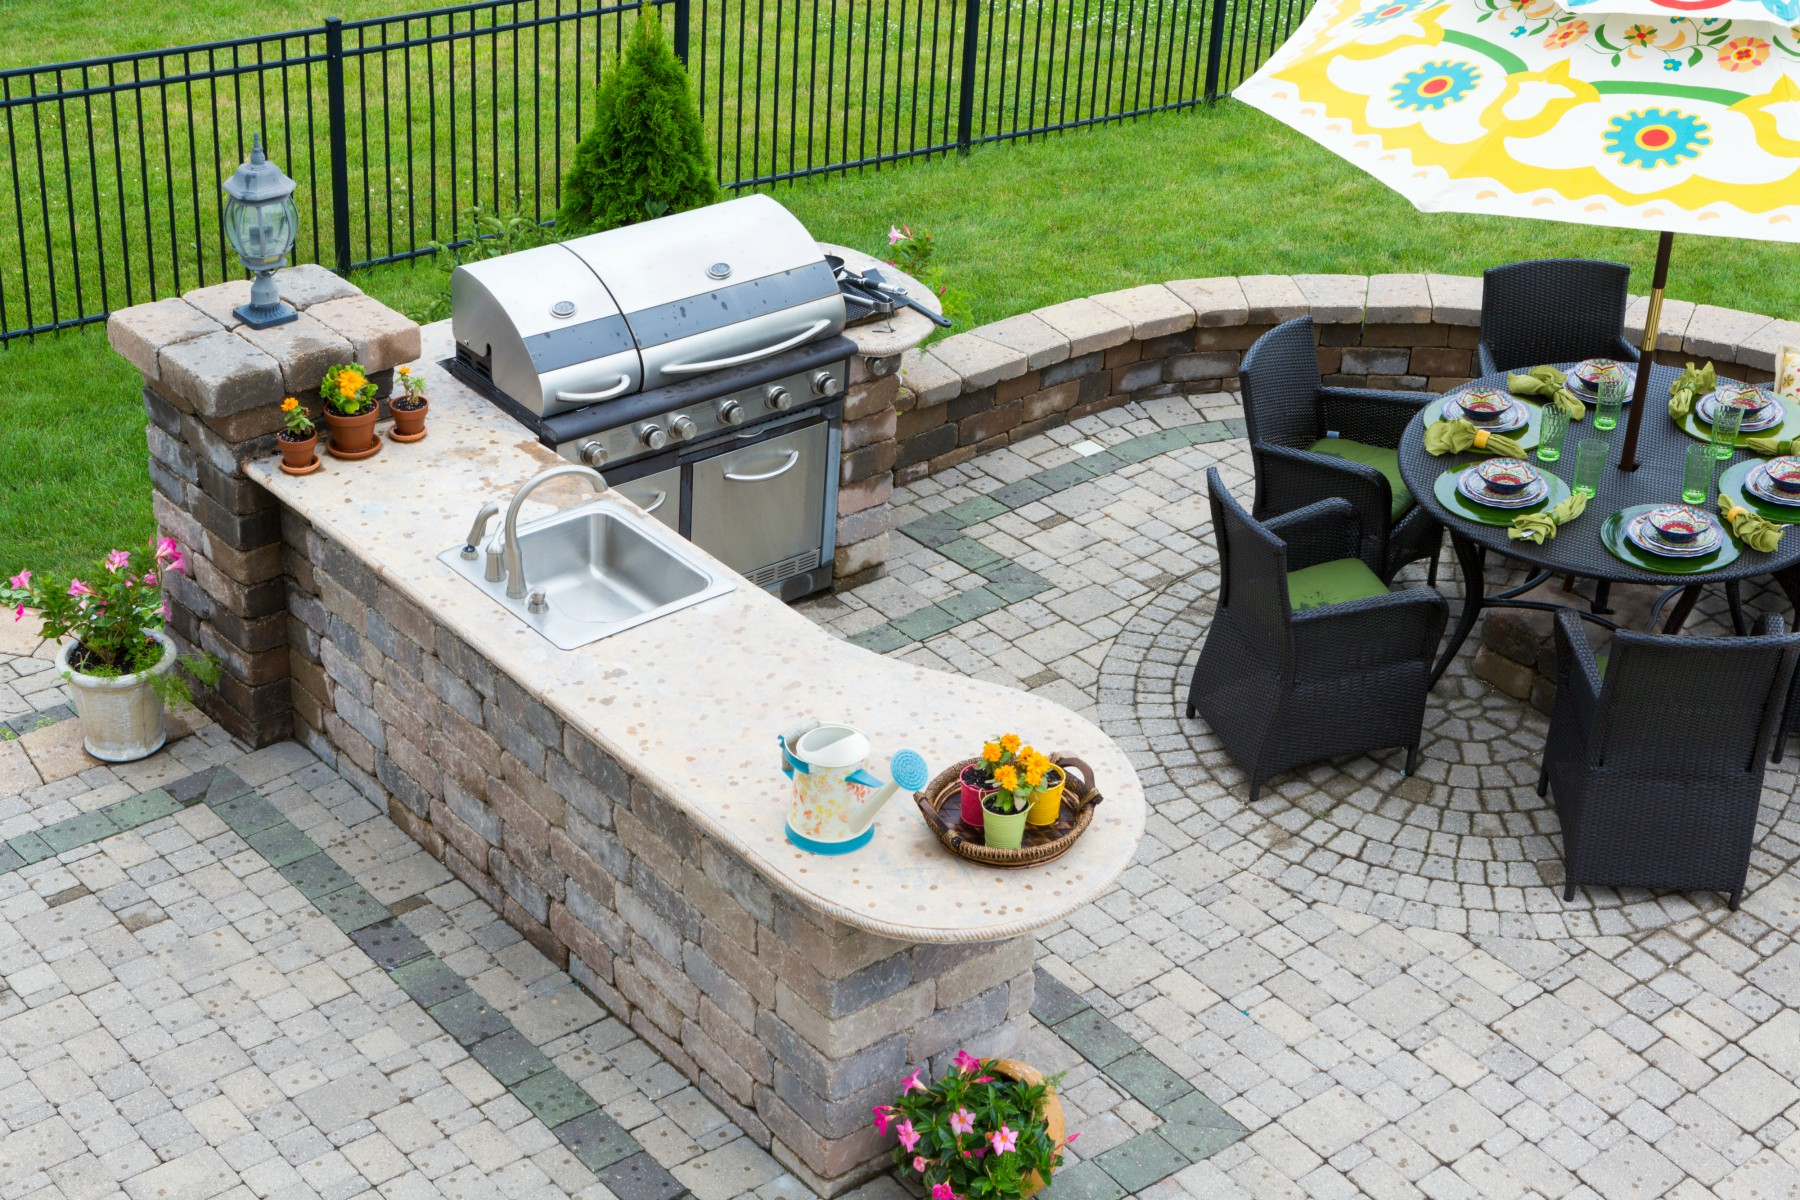 Using concrete in landscaping projects